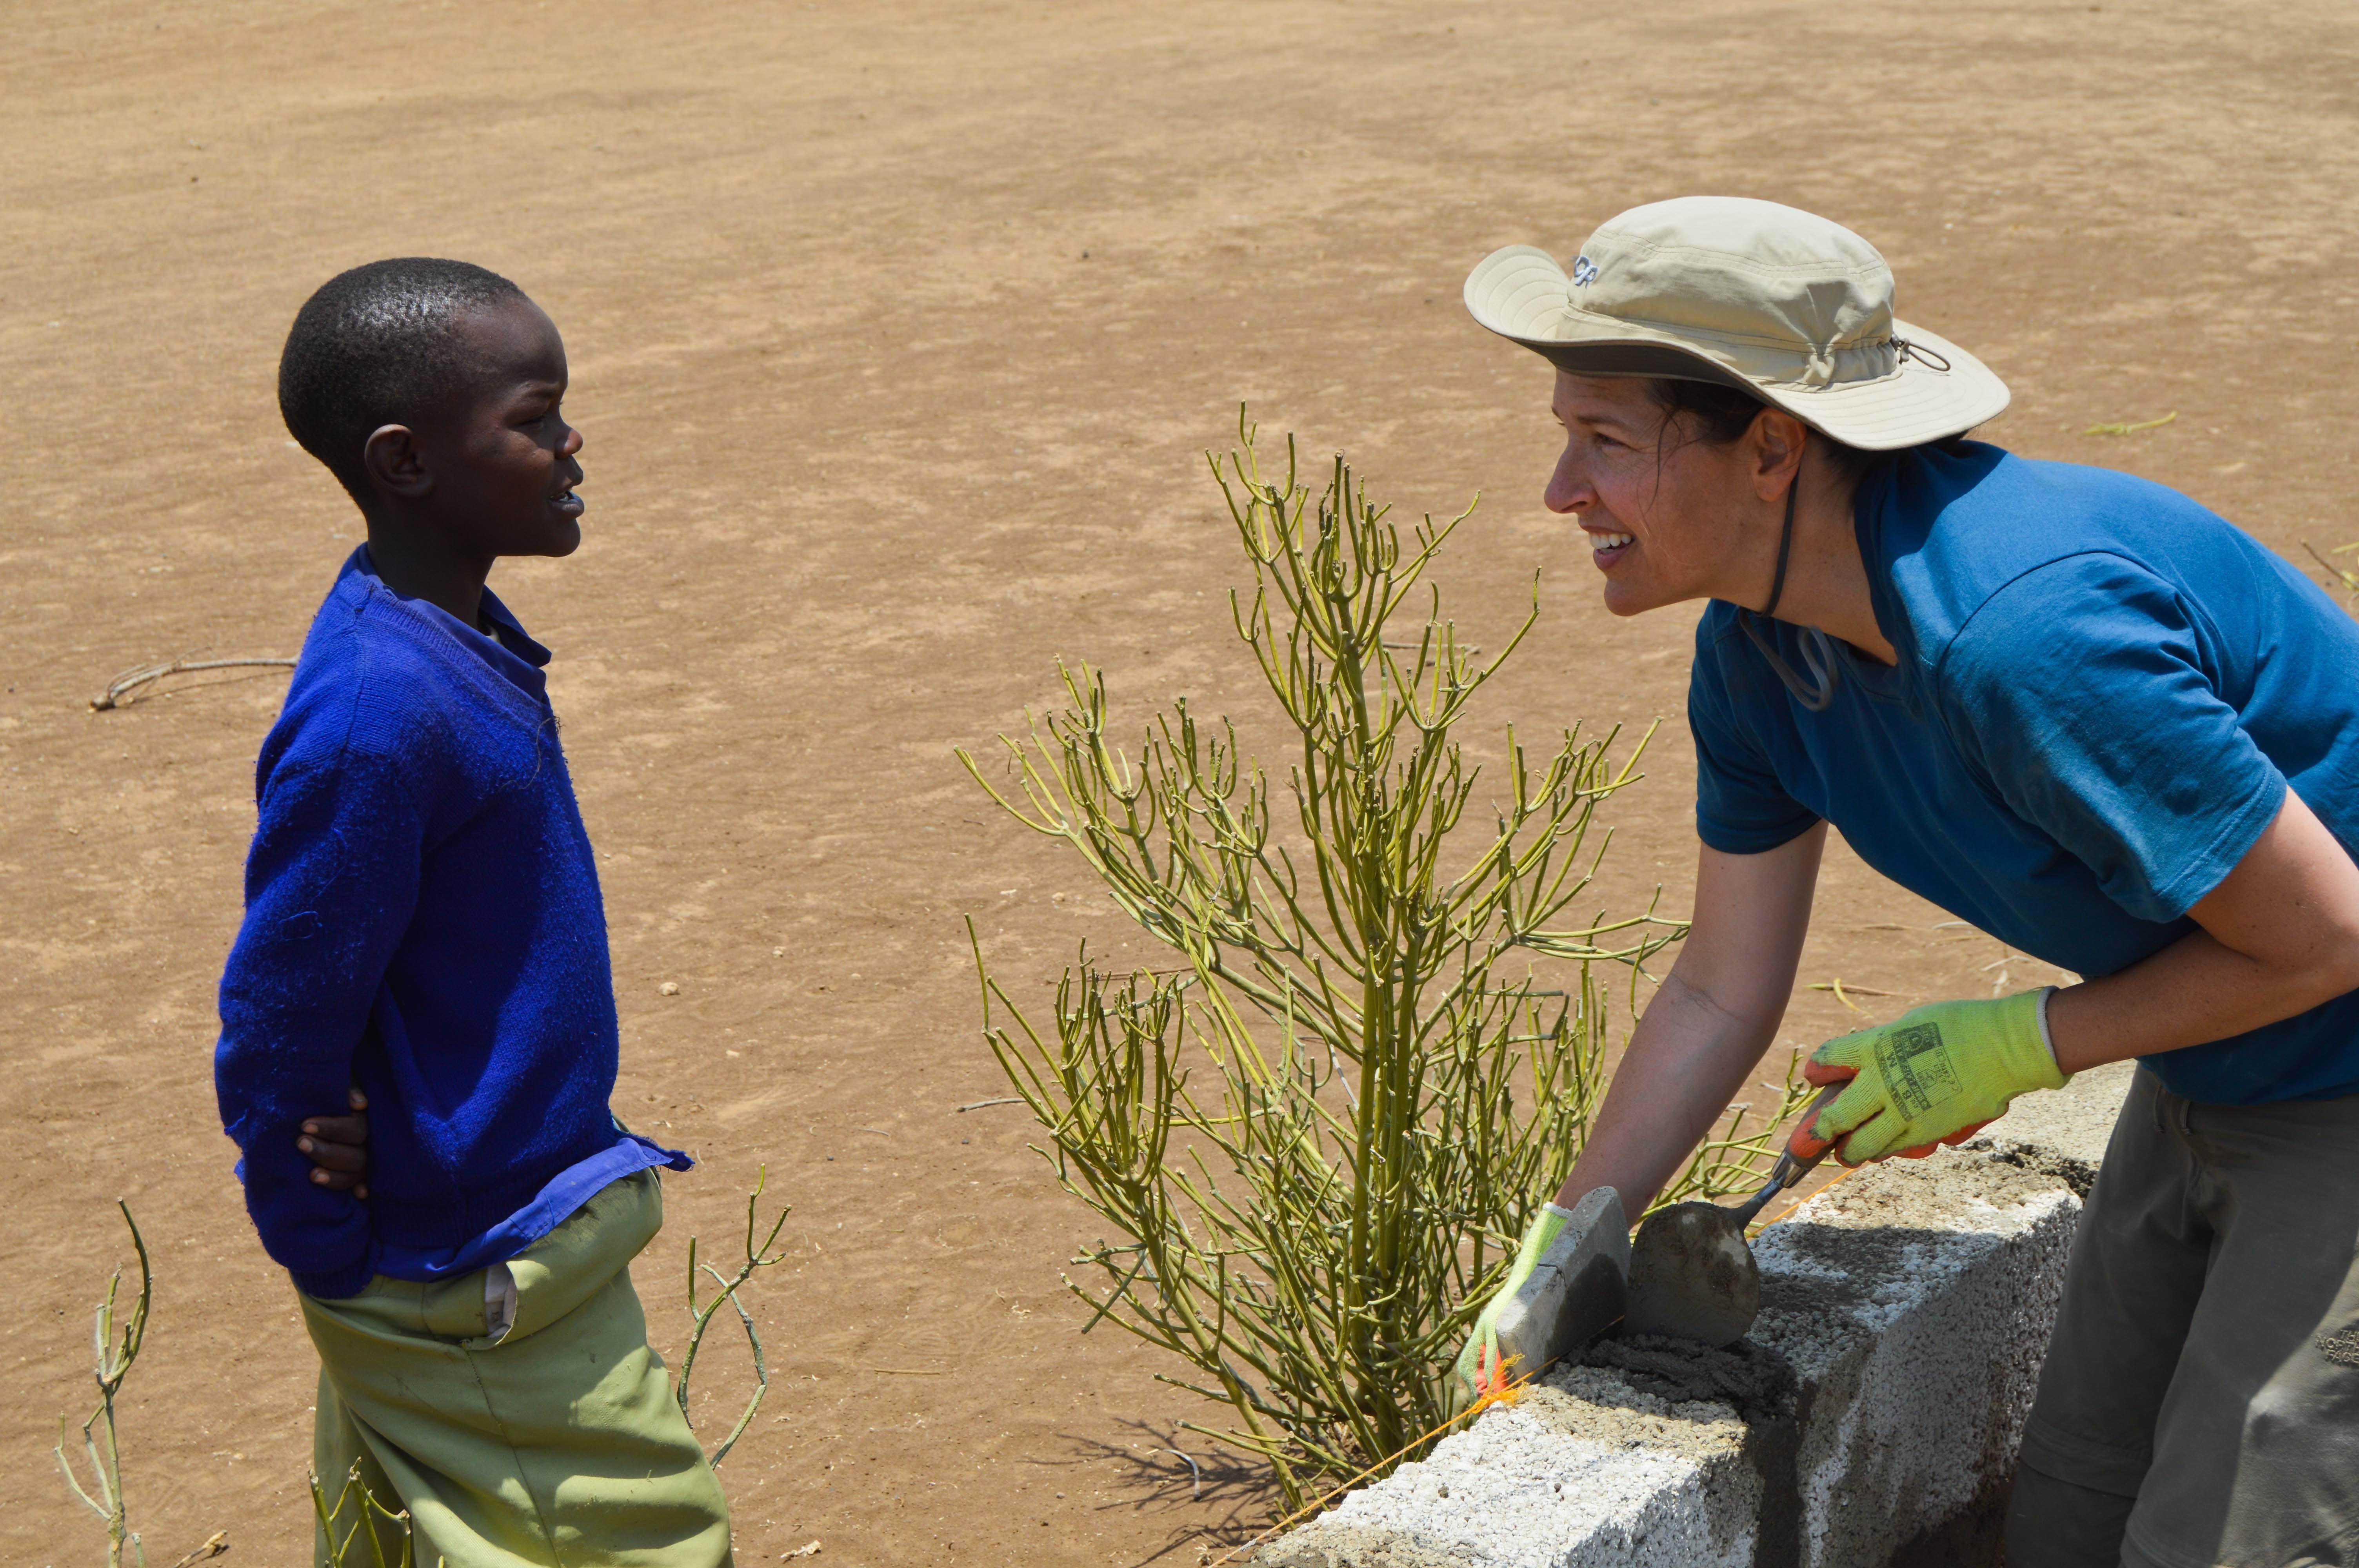 A teenage volunteer doing construction work in Tanzania builds a wall while chatting to a young child.